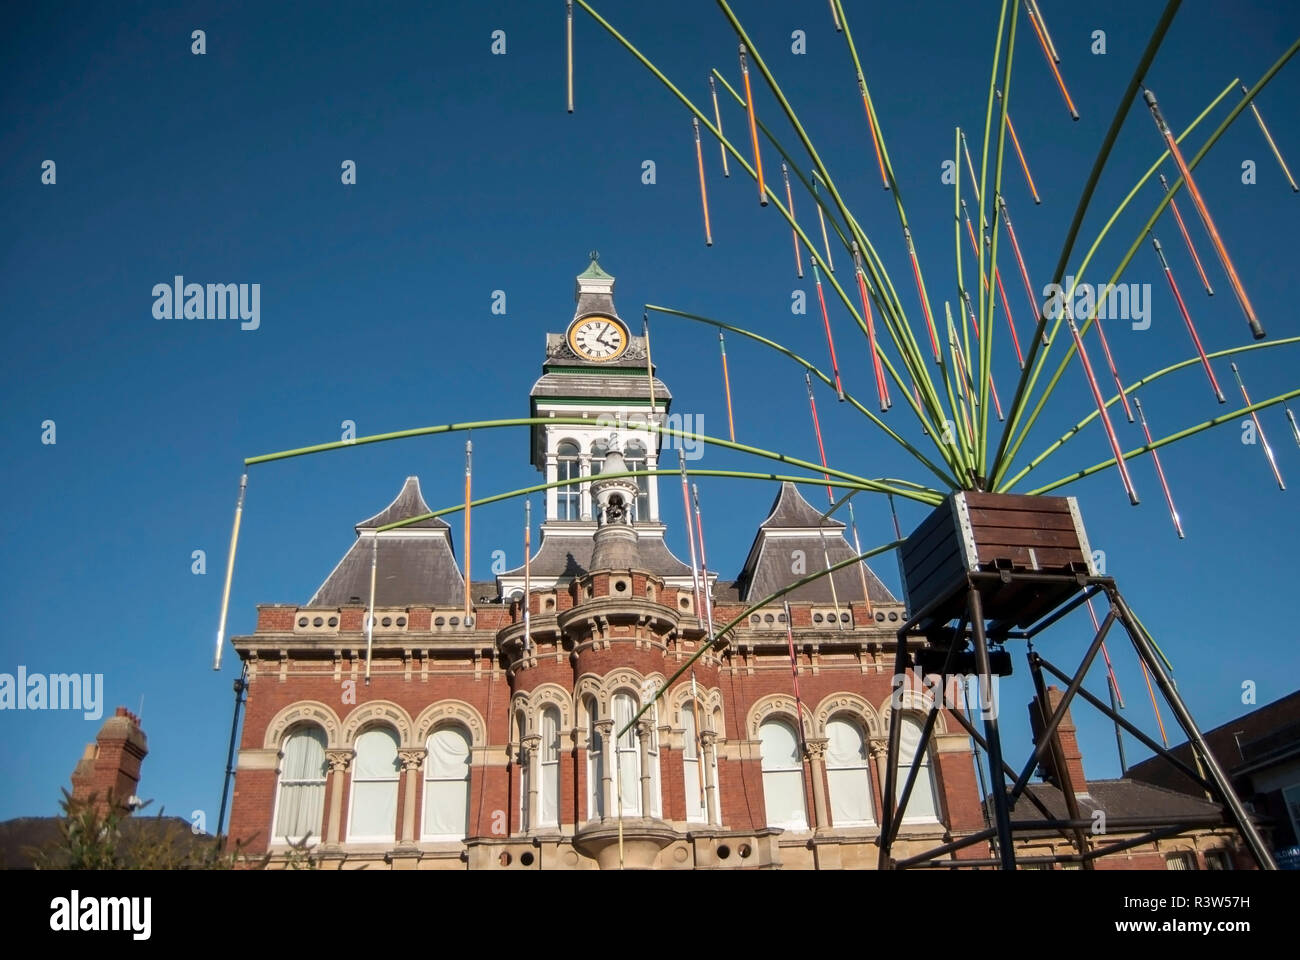 Grantham/England-September 27, 2018. Gravity fields installation in front of the Guildhall Arts Centre. - Stock Image